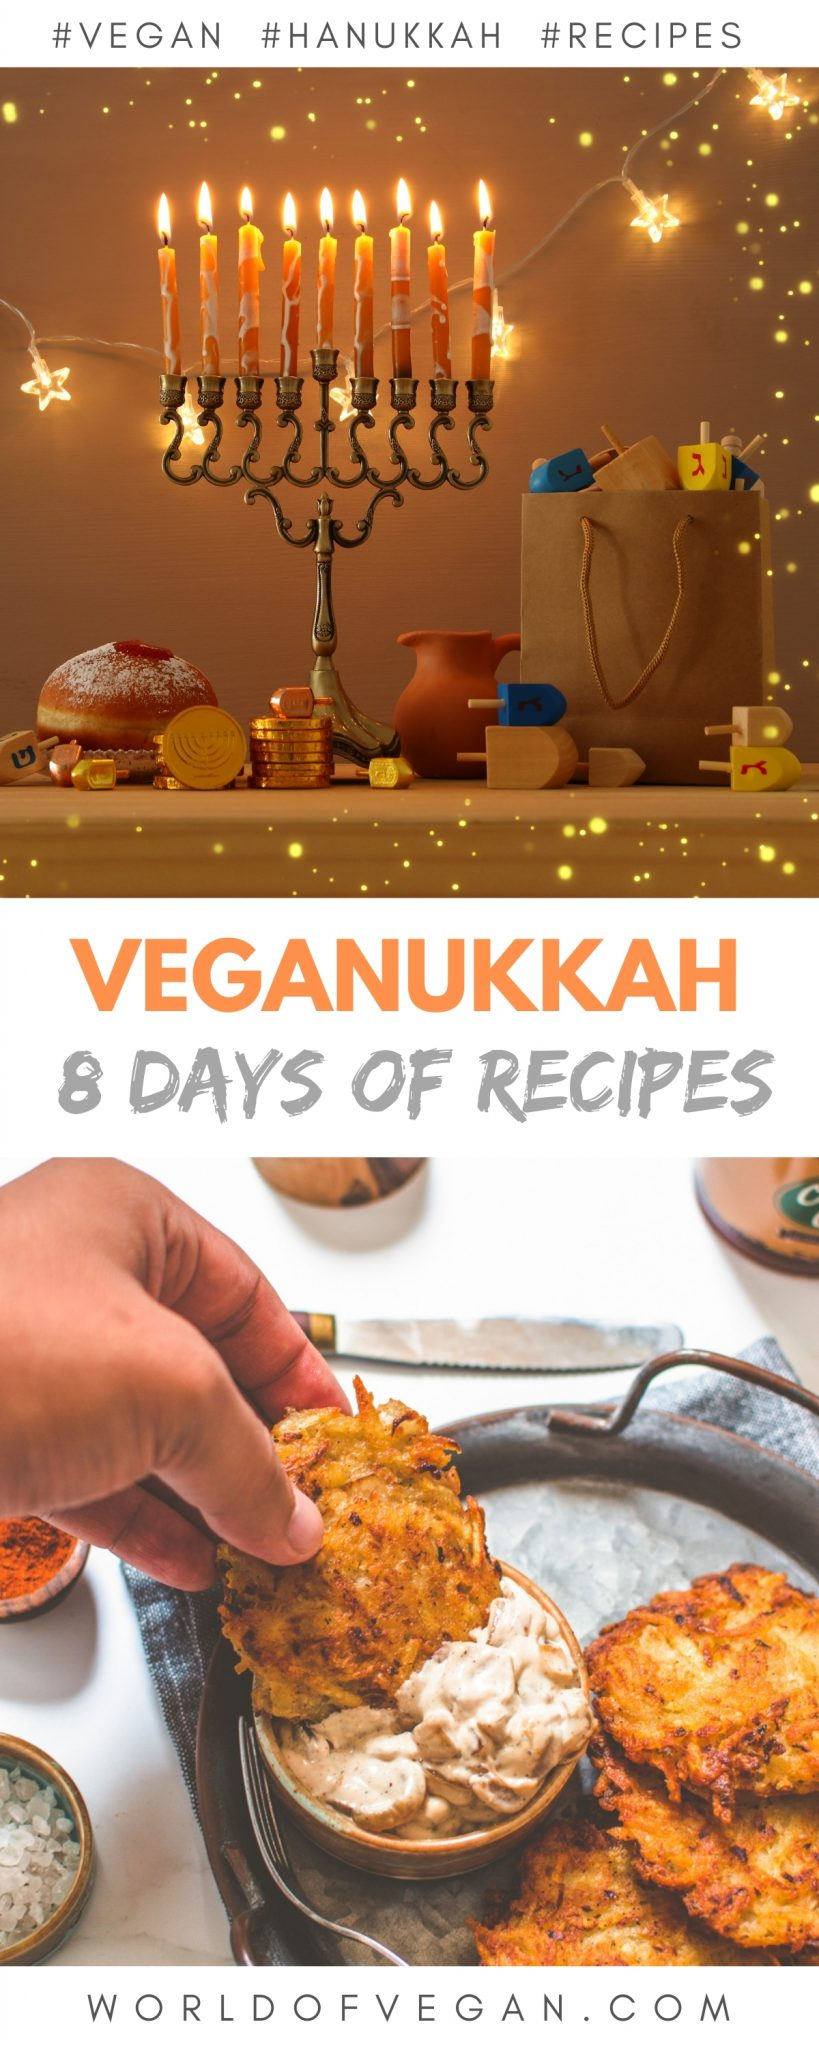 Vegan Hanukkah Recipes—One For Each Night